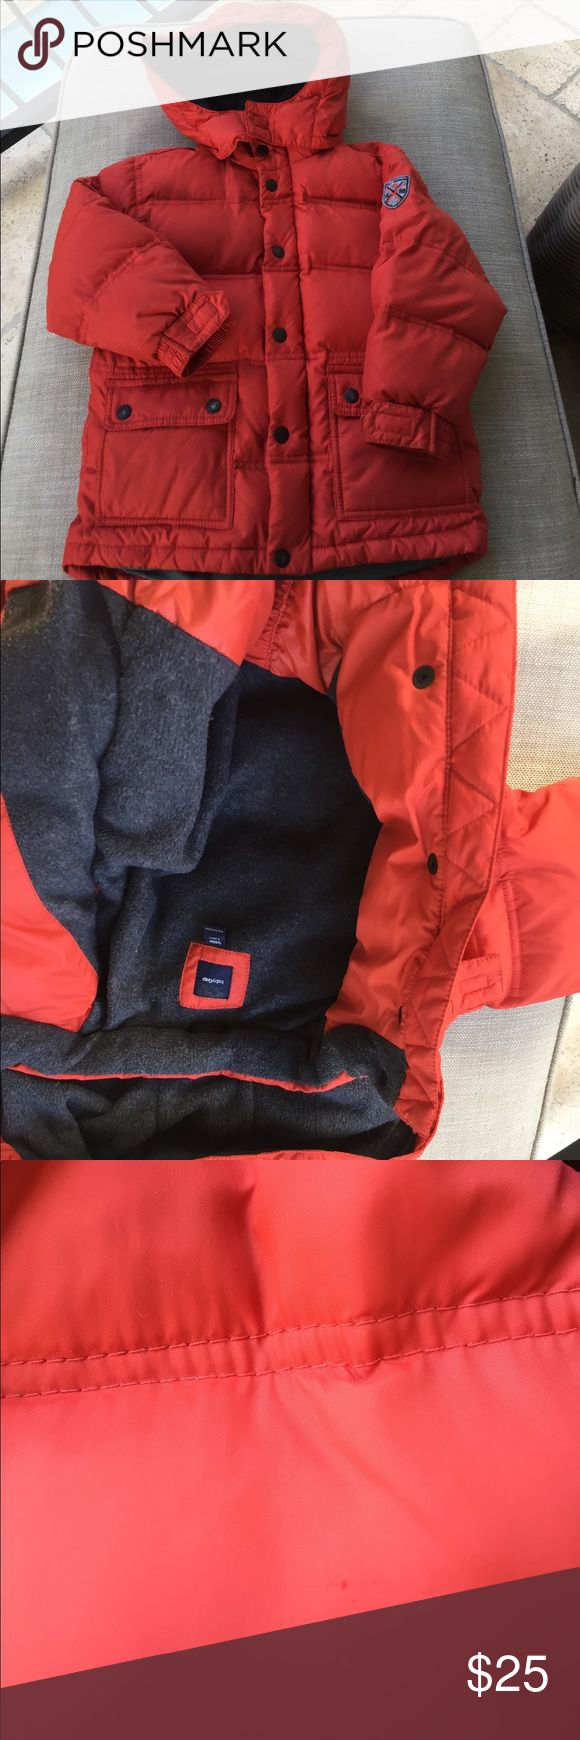 Gap Prima Loft Hooded Puffer Coat Baby Gap size 5 Orange Down Coat with detachable hood. Good used condition with some slight marks/blemishes (mostly on sleeves). See pics as I tried to capture them. Zipper and snap closure. Velcro adjustable Elastic sleeves. Charcoal grey fleece interior. Live in Houston so not worn too much. GAP Jackets & Coats Puffers